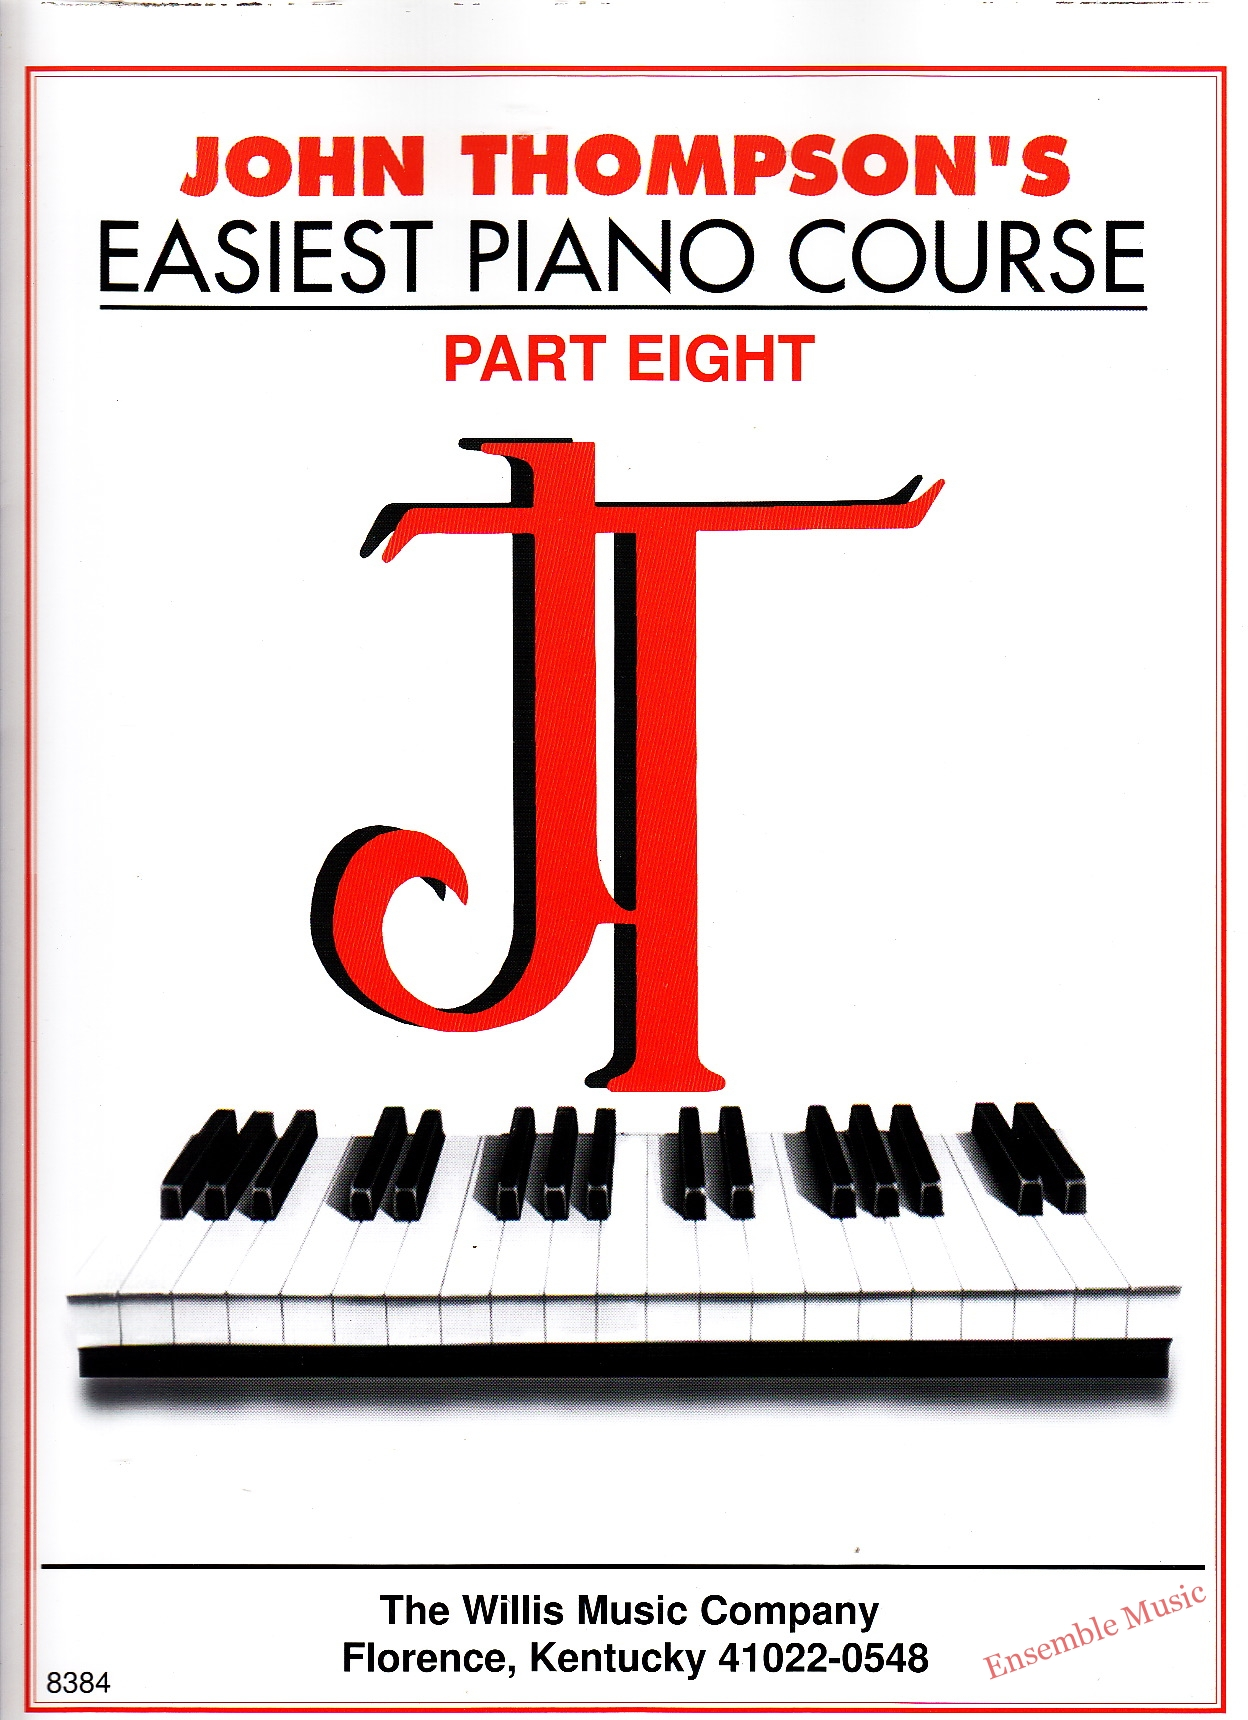 Easiest piano course part eight